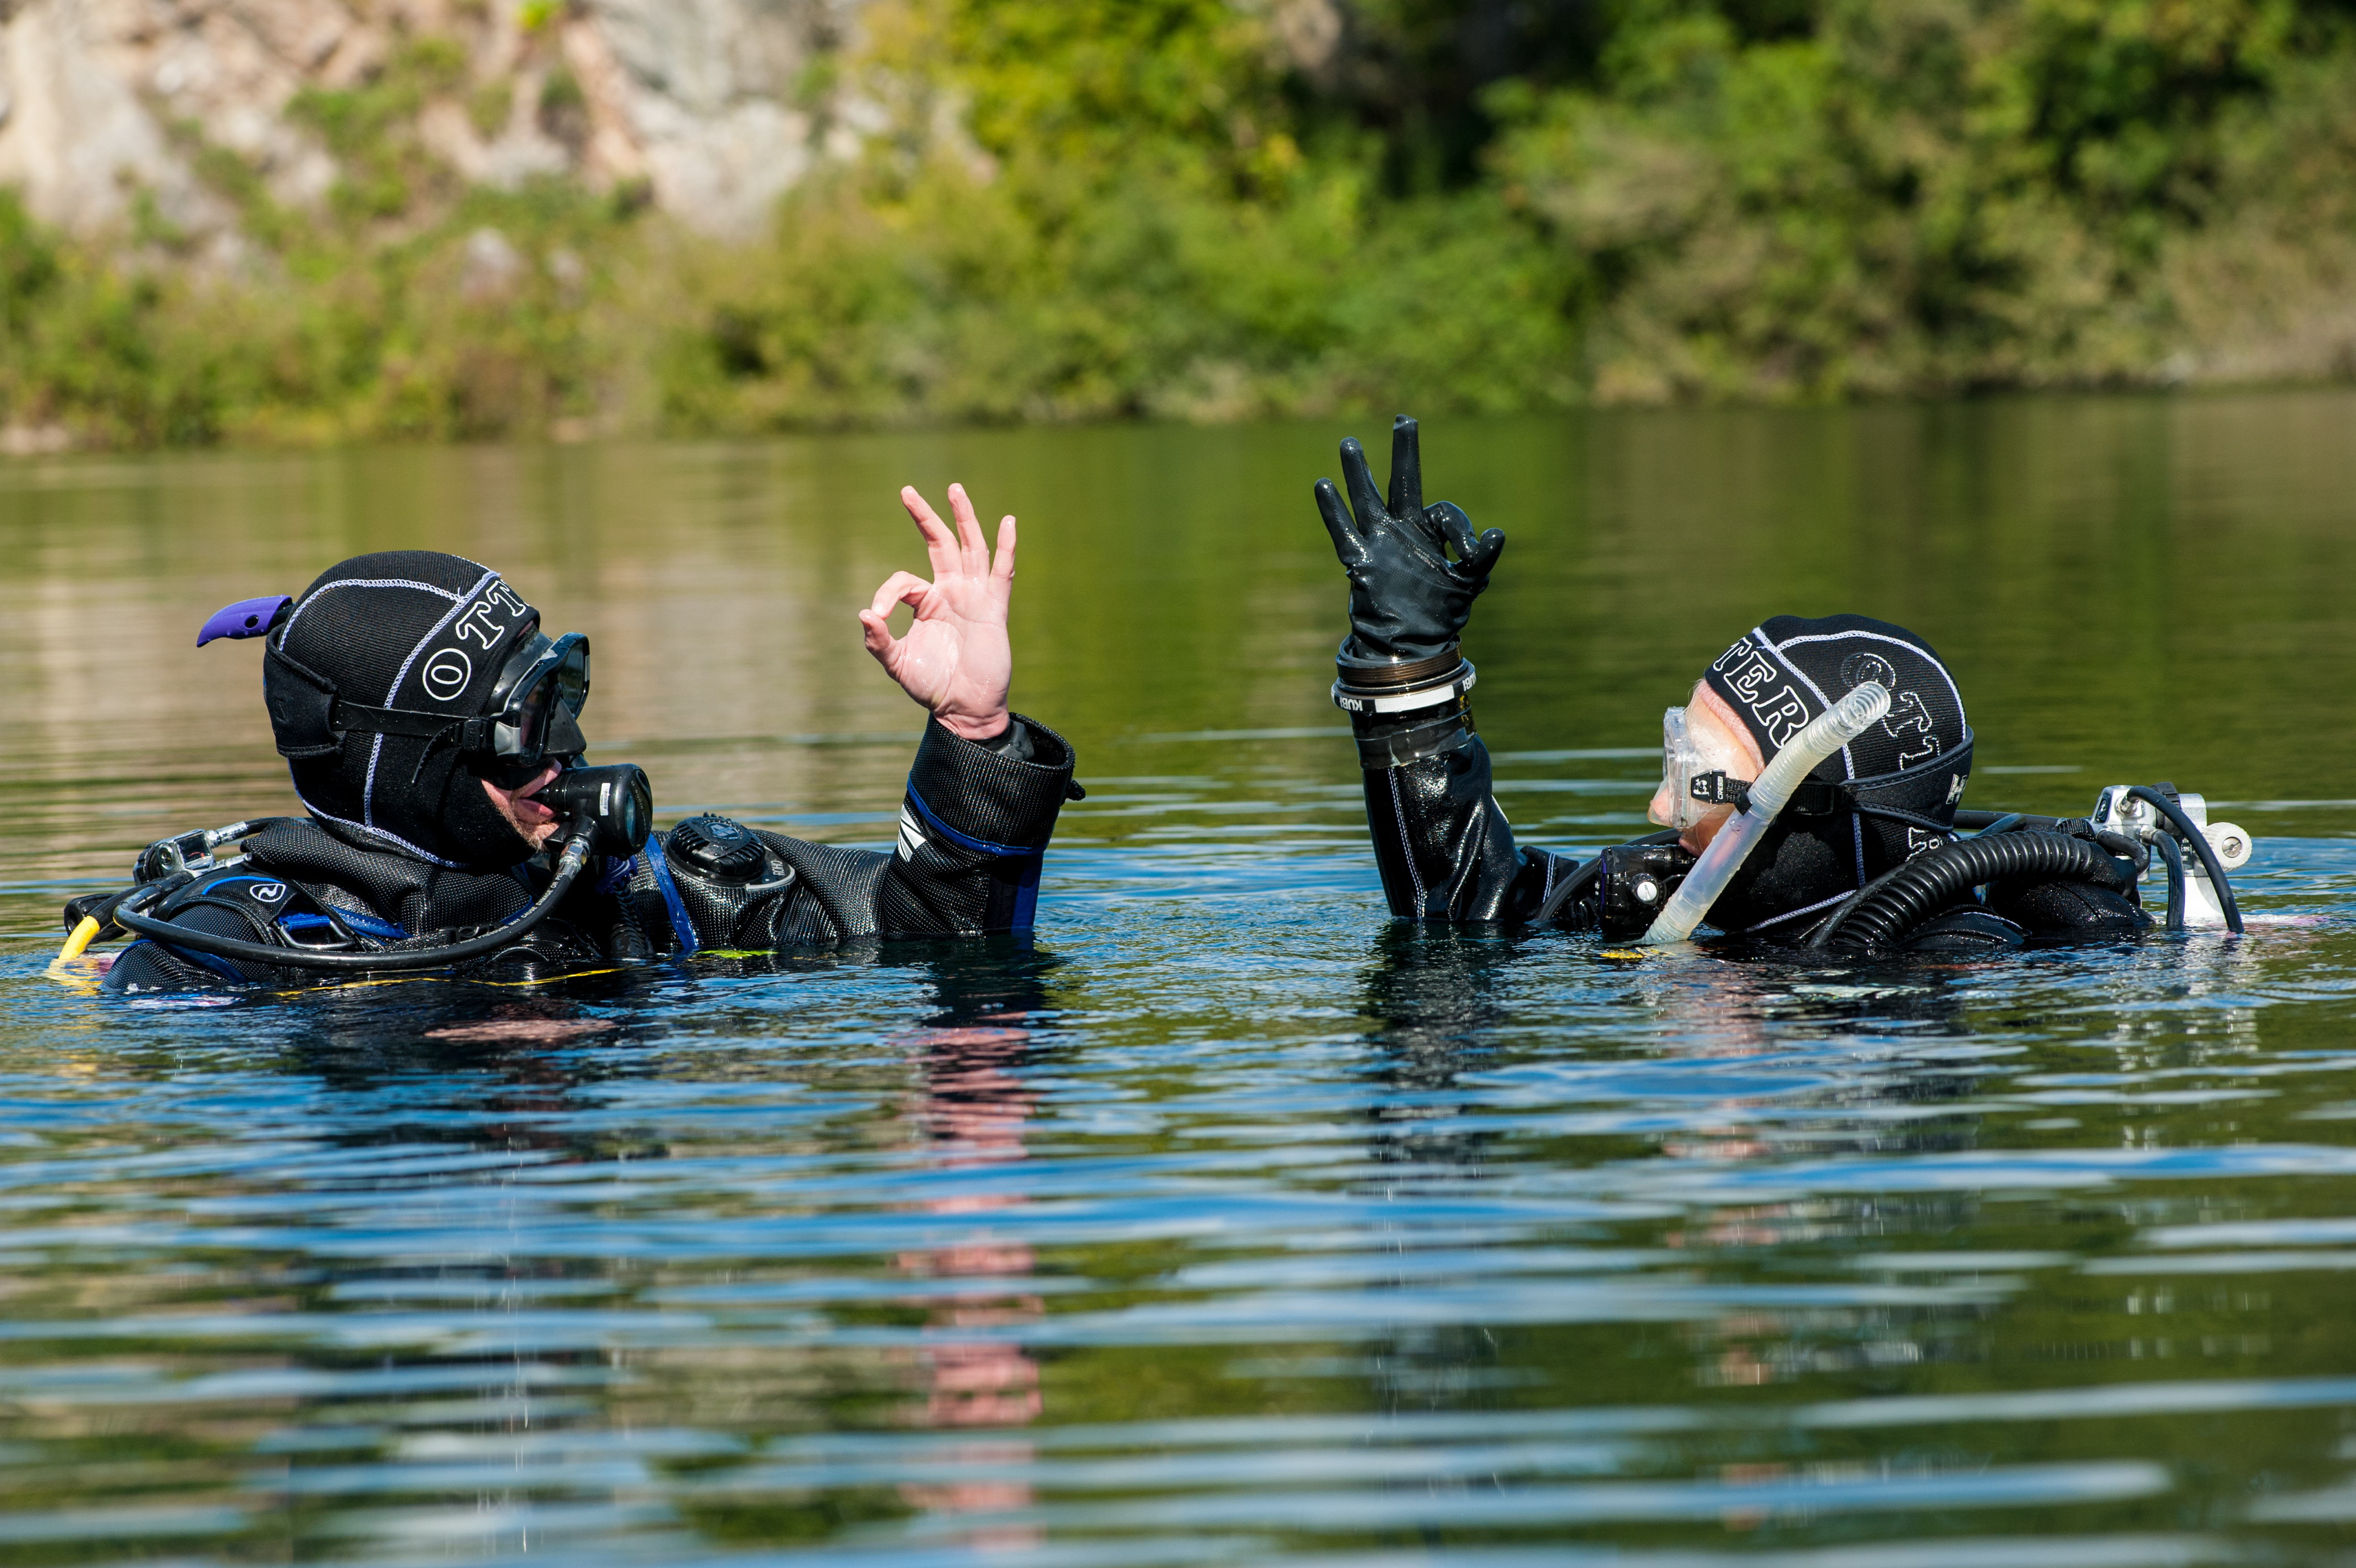 Divers in Water Using Hand Signal